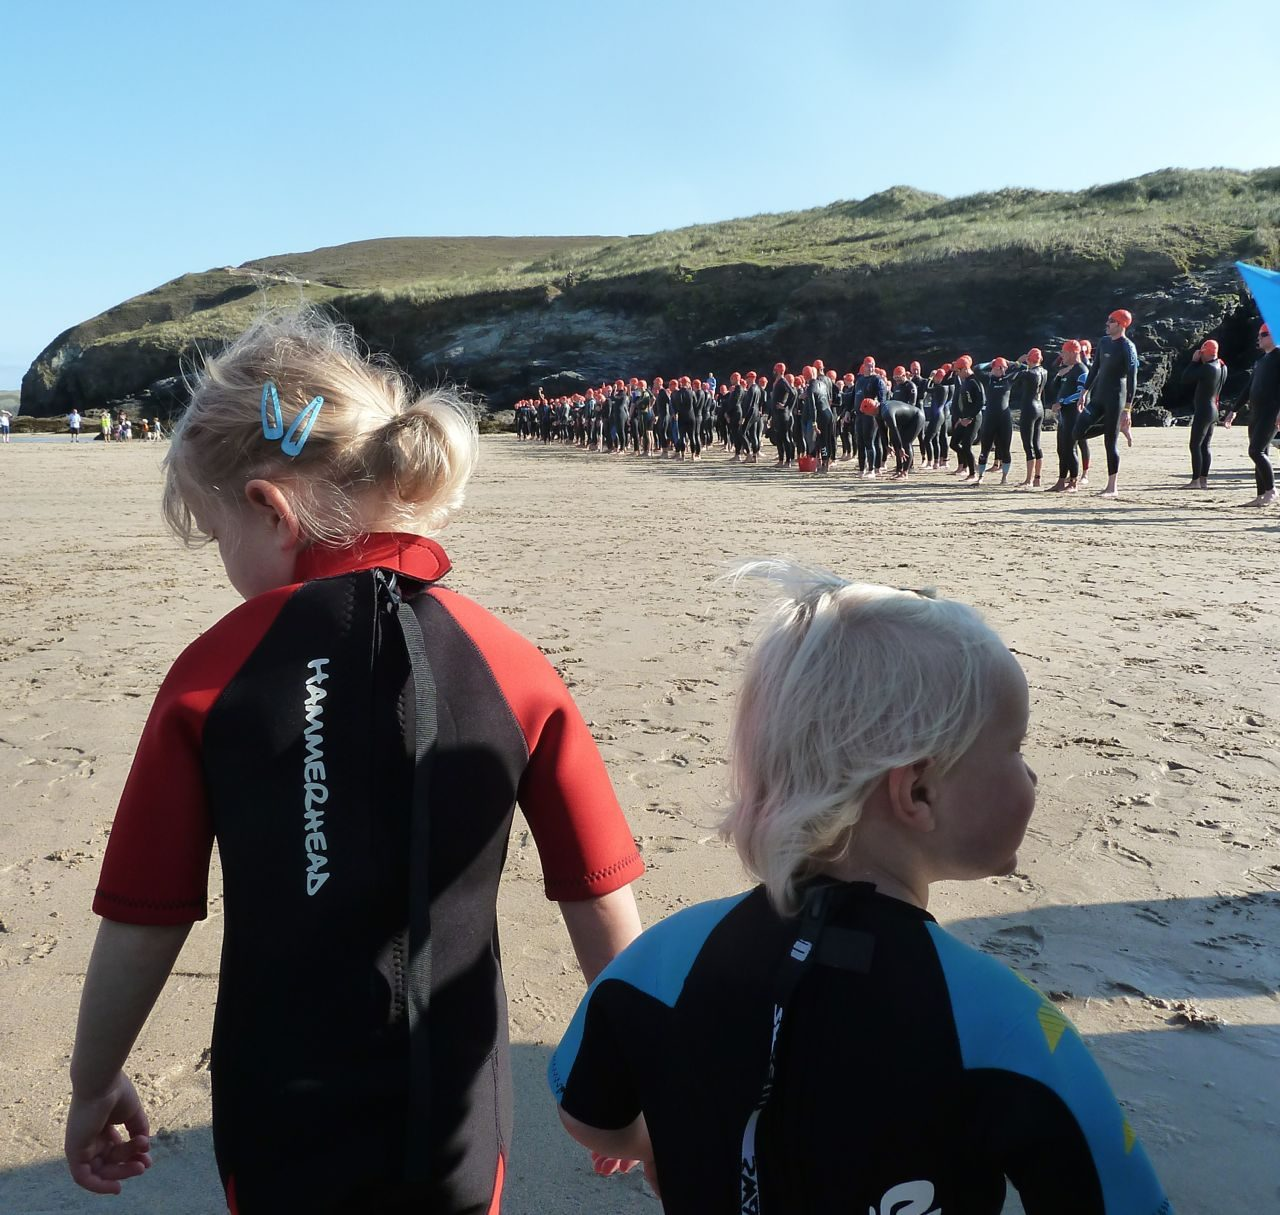 Lining up to start the Perranporth Extreme Surf Triathlon